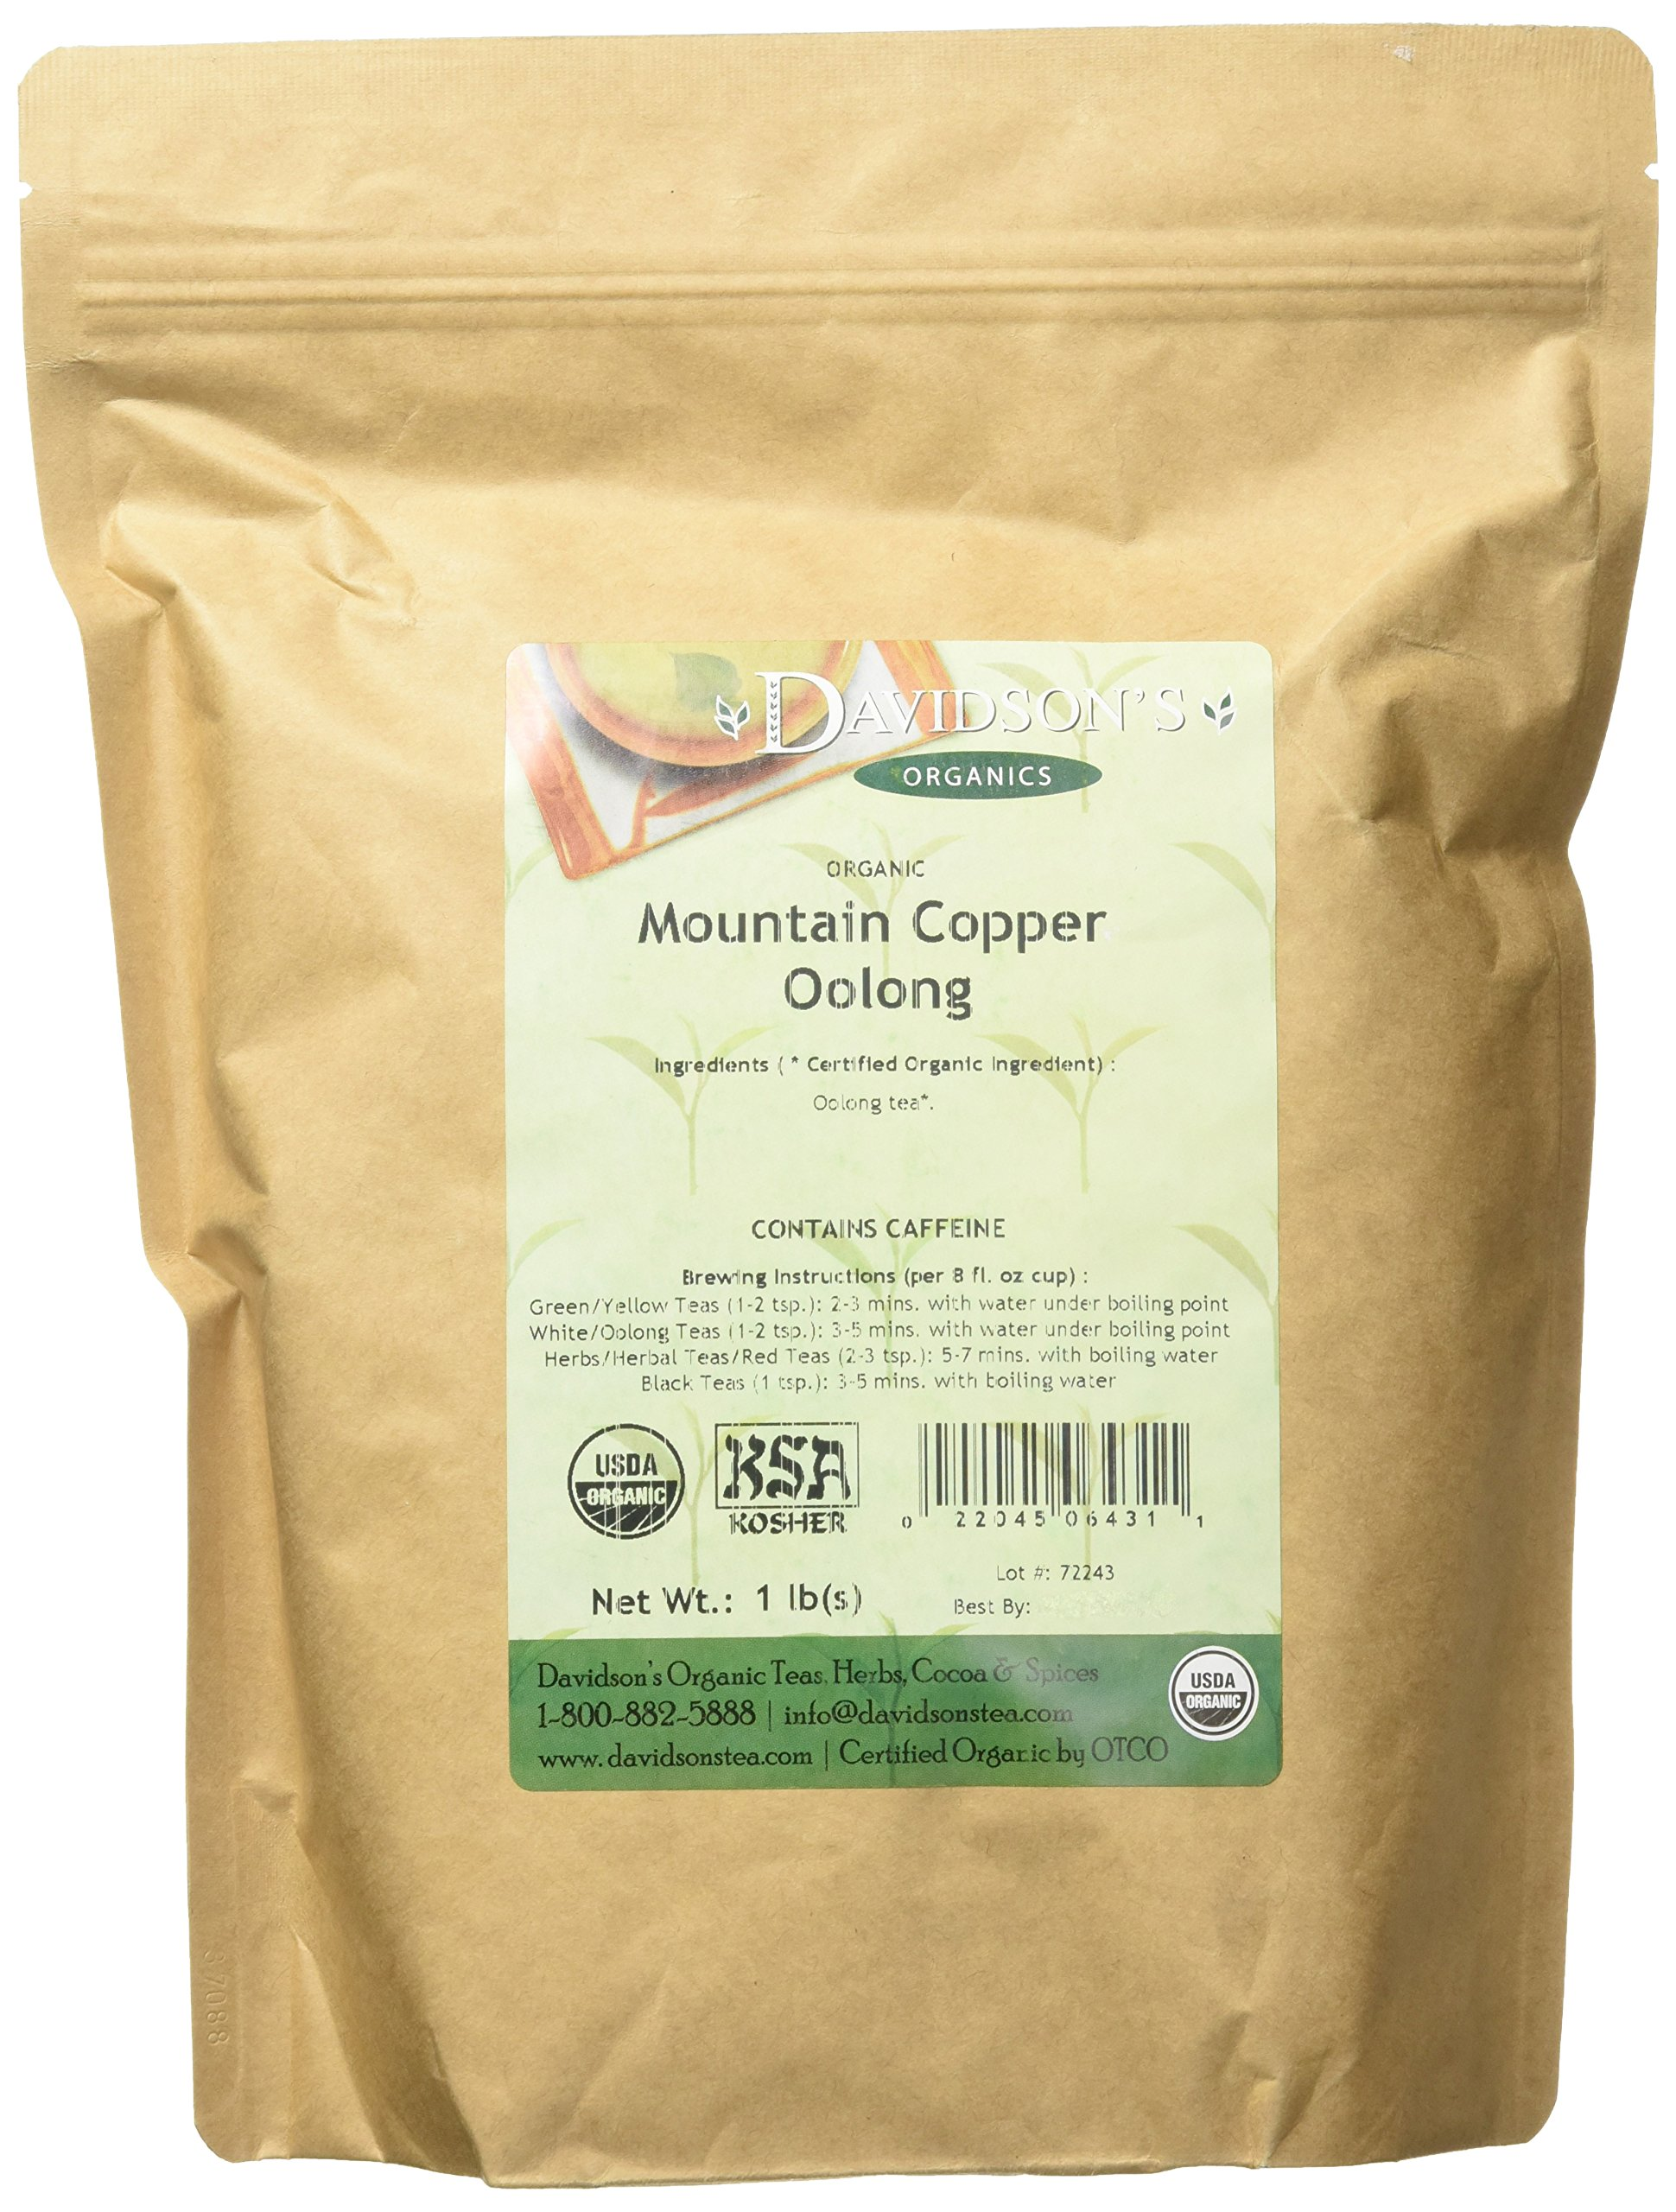 Davidson's Tea Bulk, Organic Mountain Copper Oolong, 16-Ounce Bag